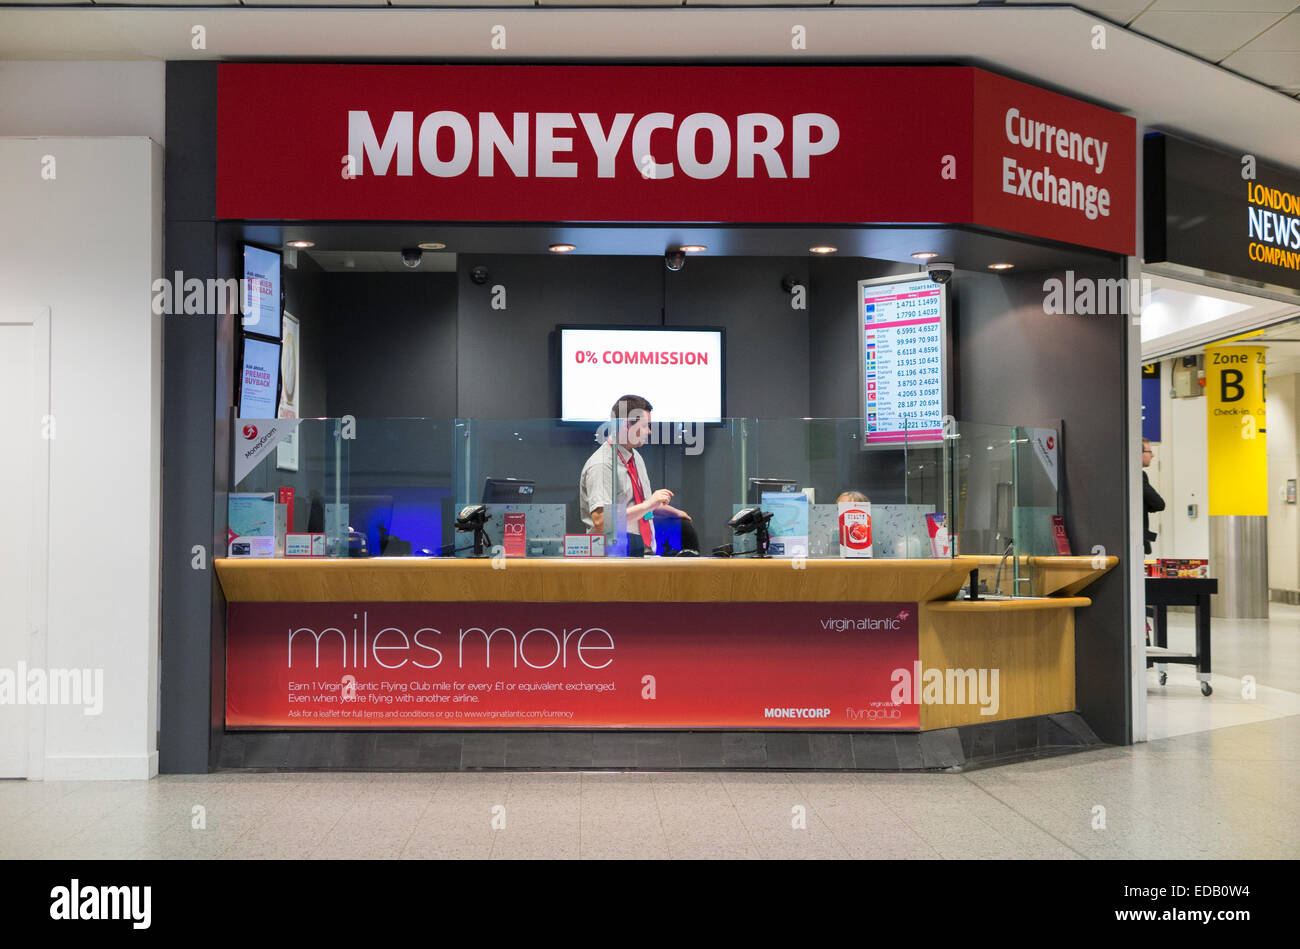 Bureau de change office operated by moneycorp south terminal gatwick stock photo 77074176 alamy - Gatwick airport bureau de change ...